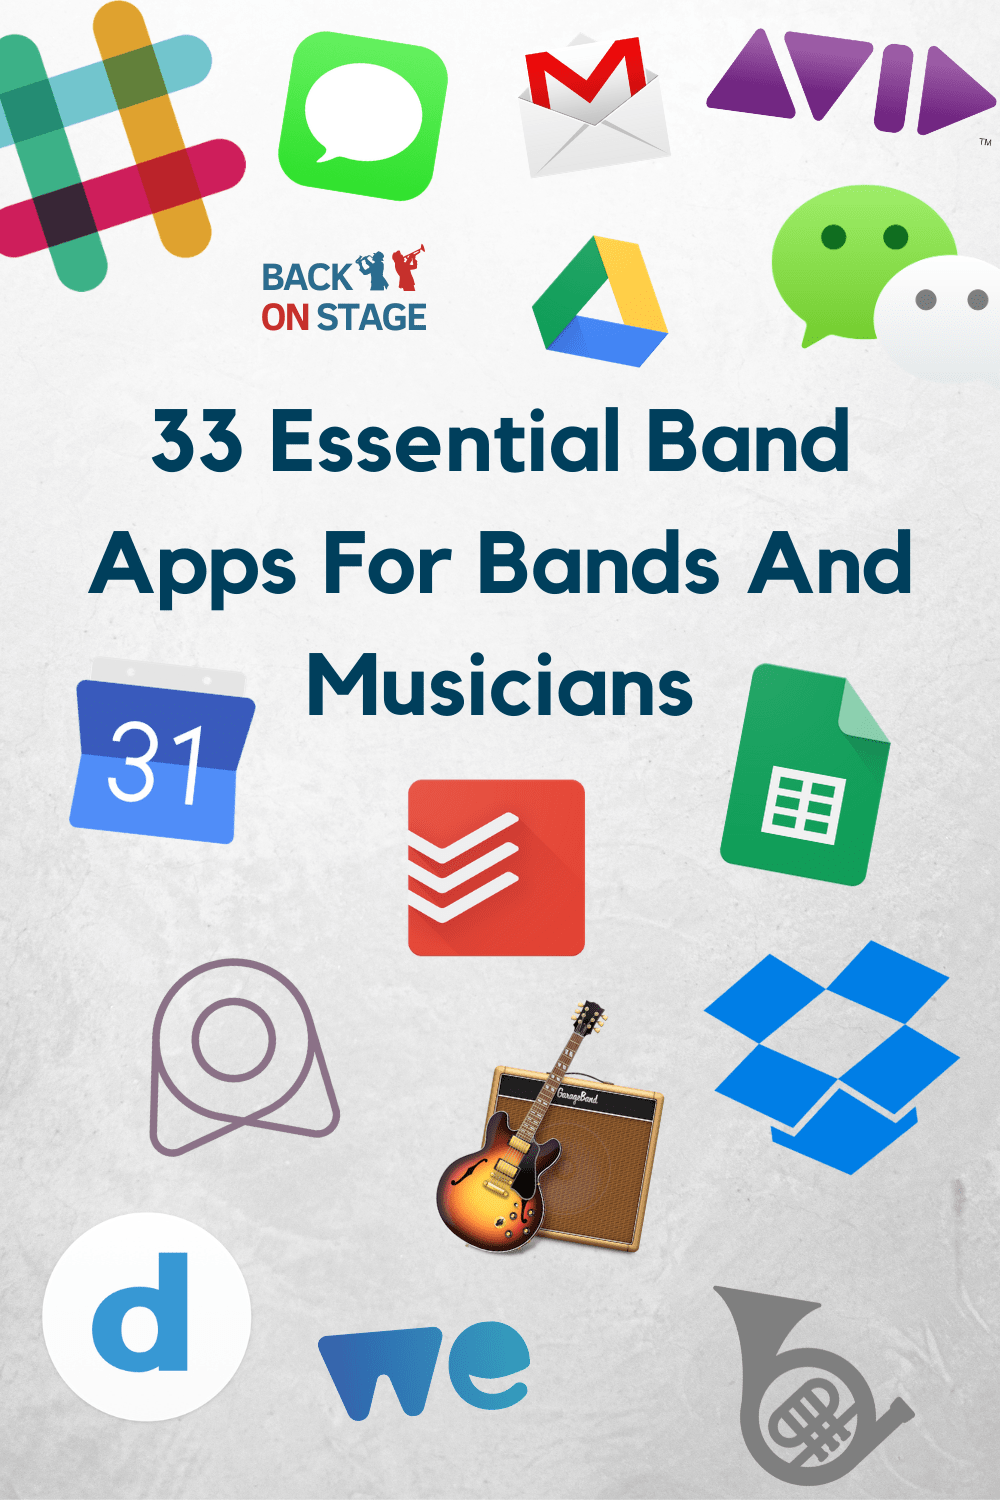 Essential Band Apps For Bands And Musicians